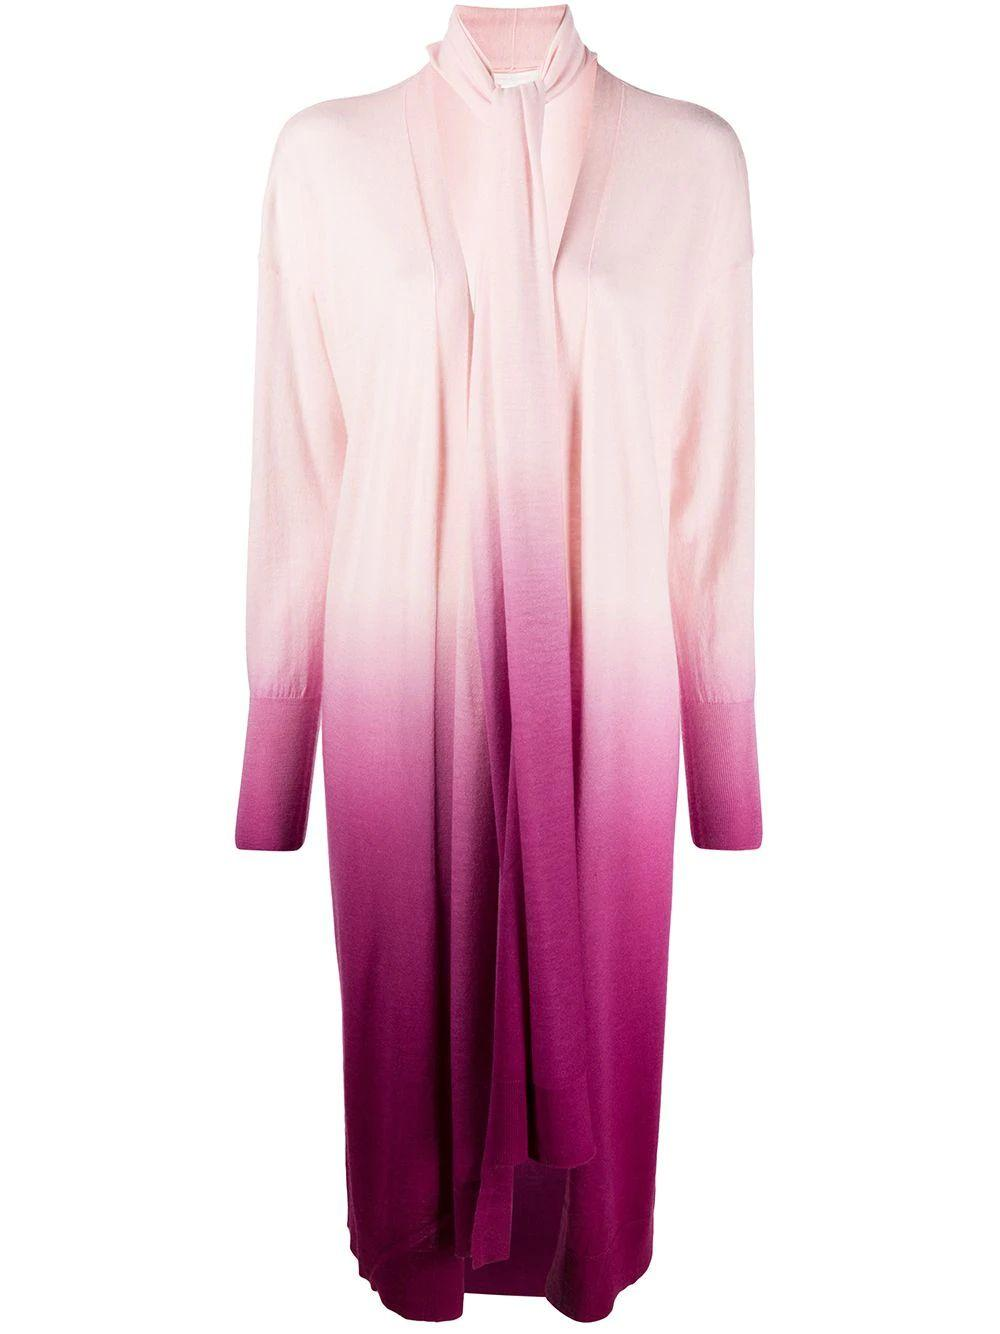 Long Sleeve Ombre Cashmere Scarf Cardi Item # 120-6016-K-OMBRE